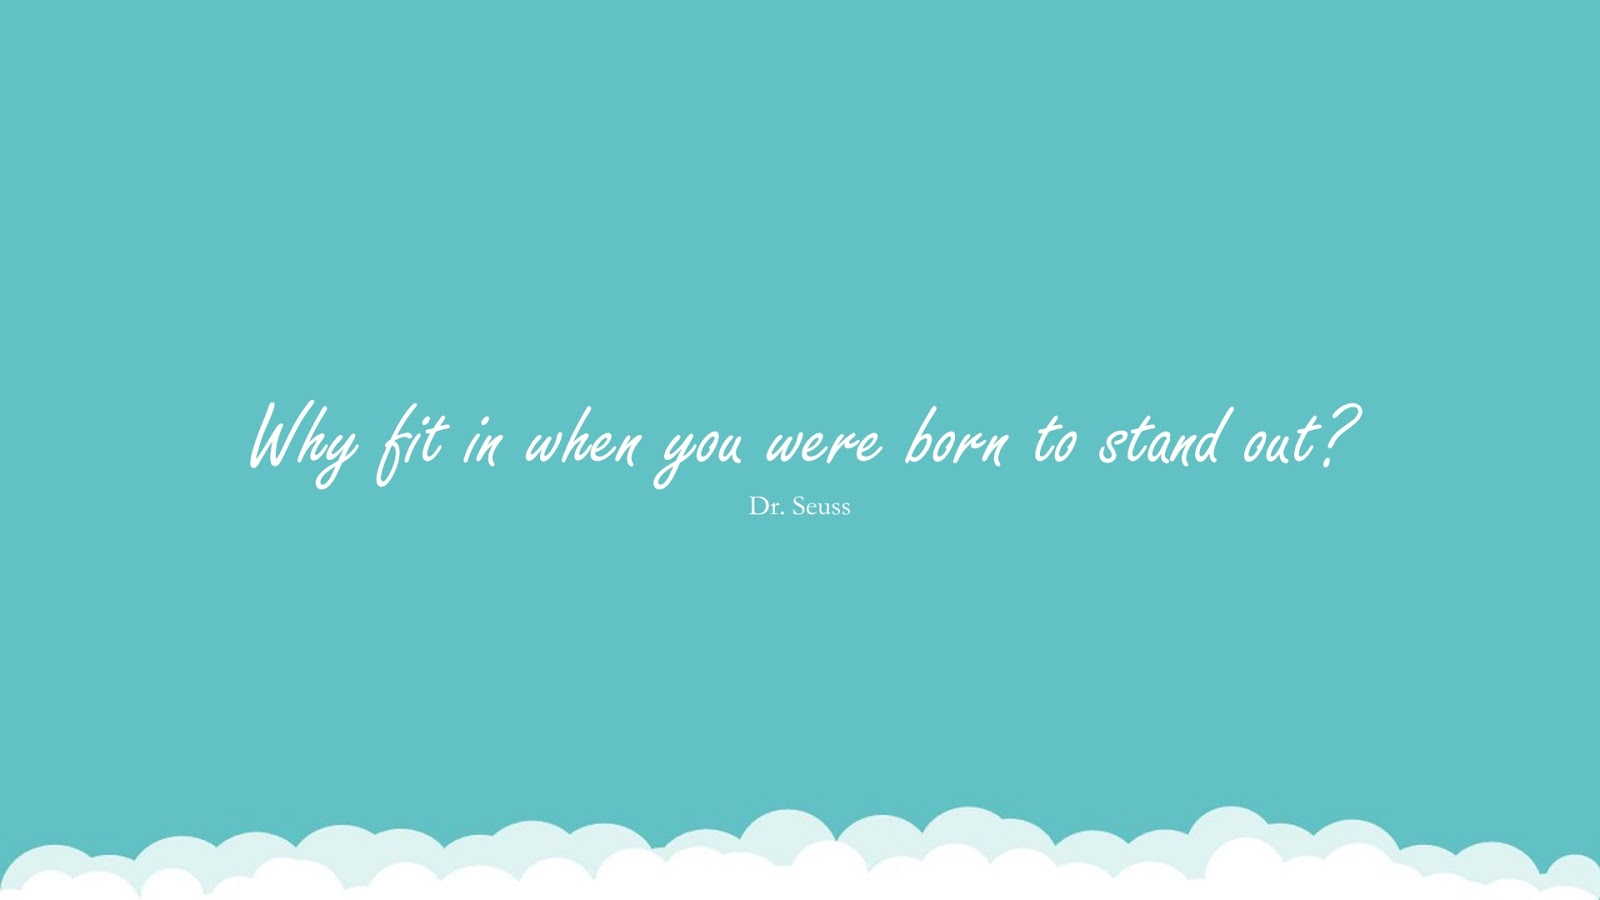 Why fit in when you were born to stand out? (Dr. Seuss);  #PositiveQuotes